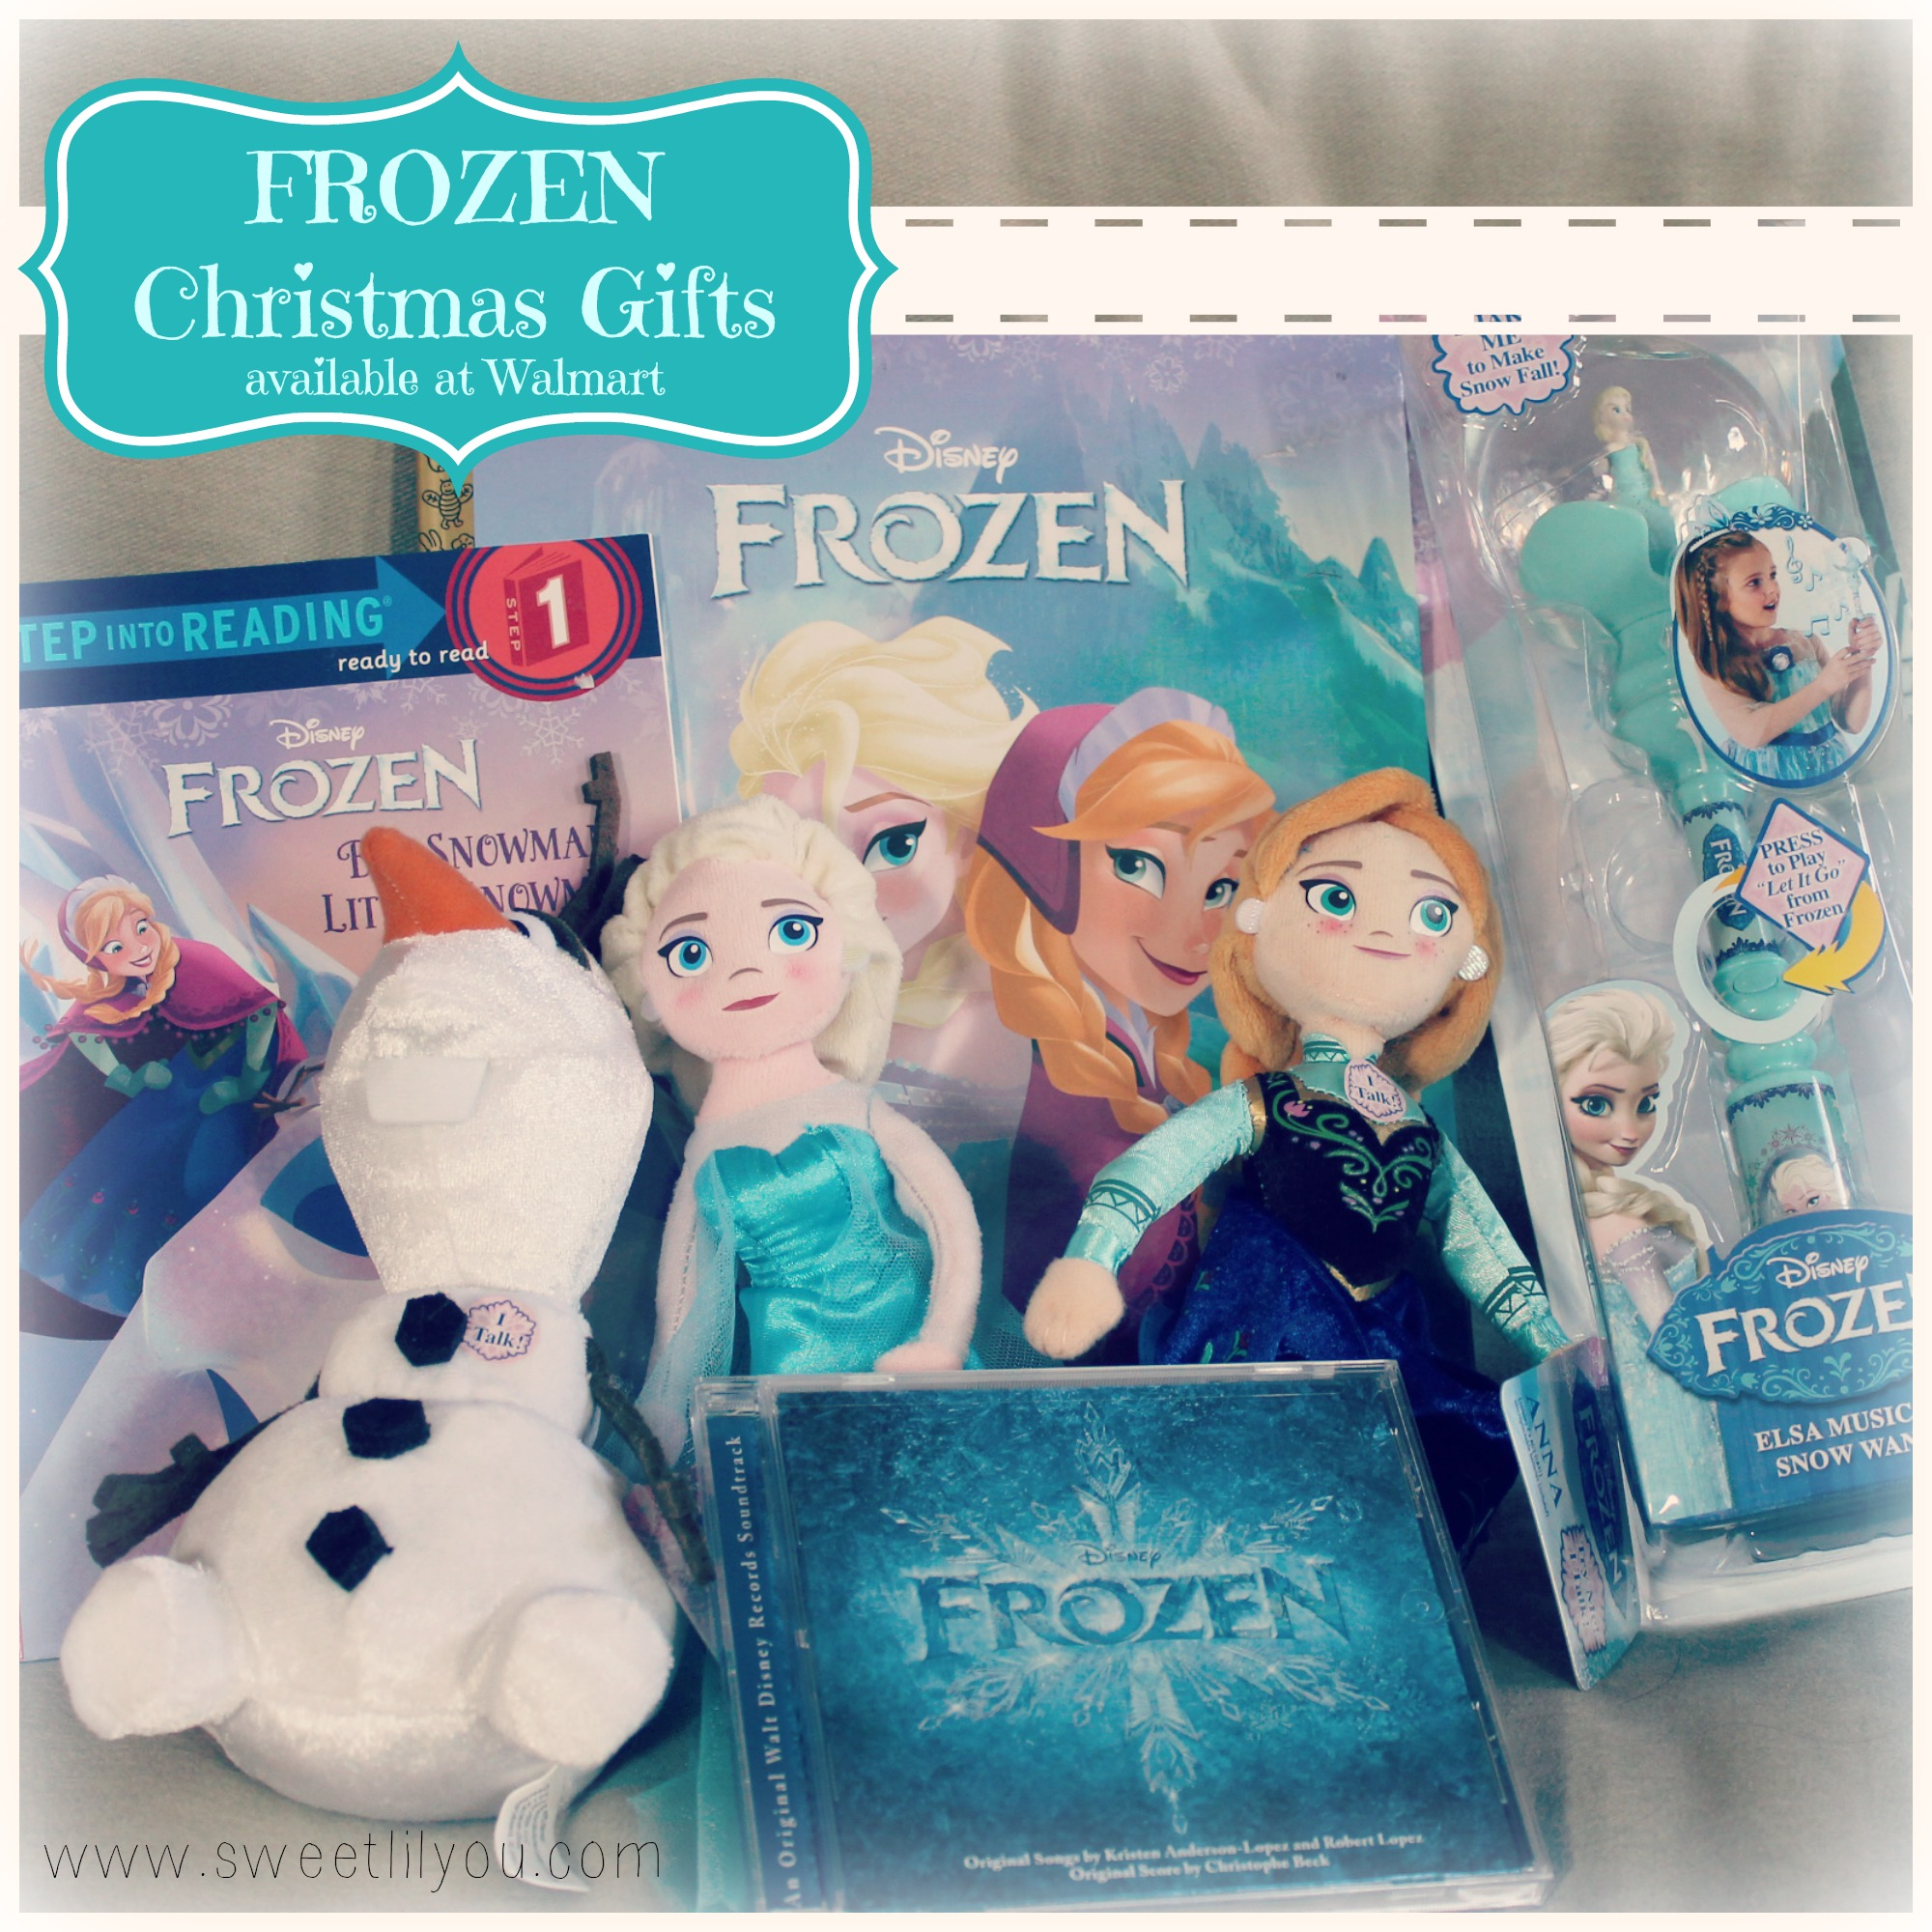 A FROZEN Holiday! #FROZENfun at Walmart! - sweet lil you